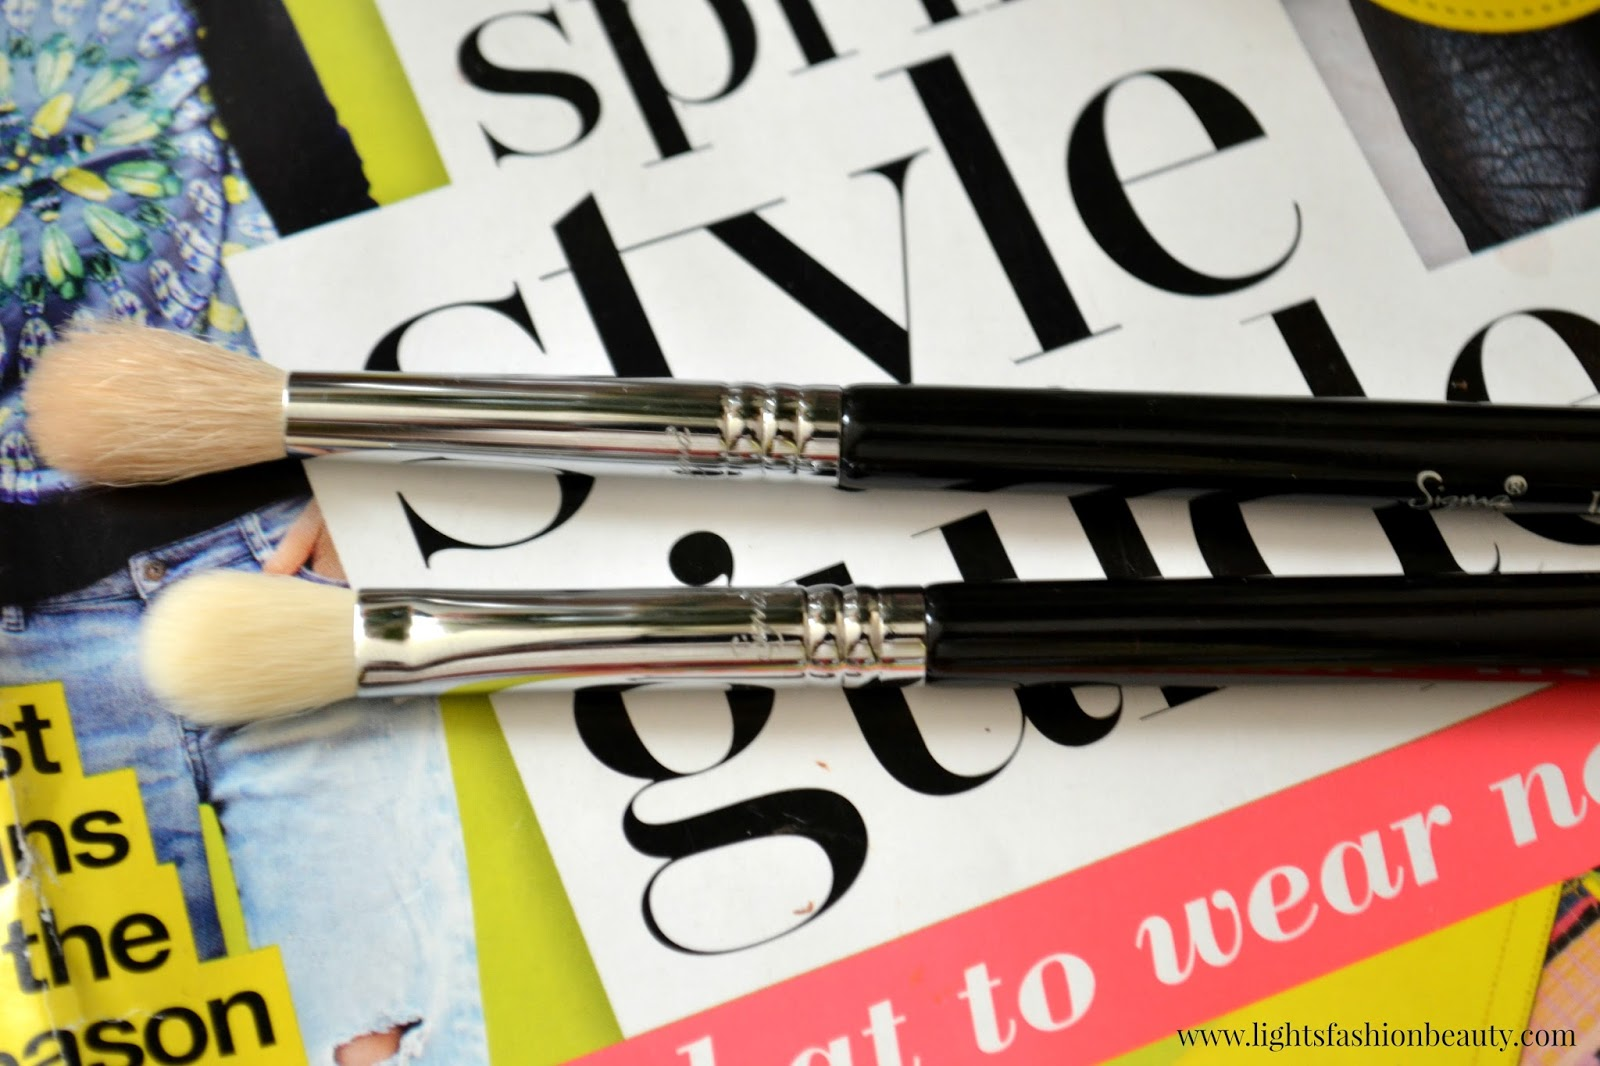 http://www.obsessedlook.com/, obsessedlook, obsessed look online makeup shop, http://www.obsessedlook.com/, Sigma E35 and E25 Eyeshadow Brush, sigma E25 blending brush, sigma E35 blending brush, sigma makeup brushes, sigma brushes, sigma brishes review, bloggers, canadian blogger, montreal blogger, montreal beauty blogger, sigma brushes, lightsfashionbeauty